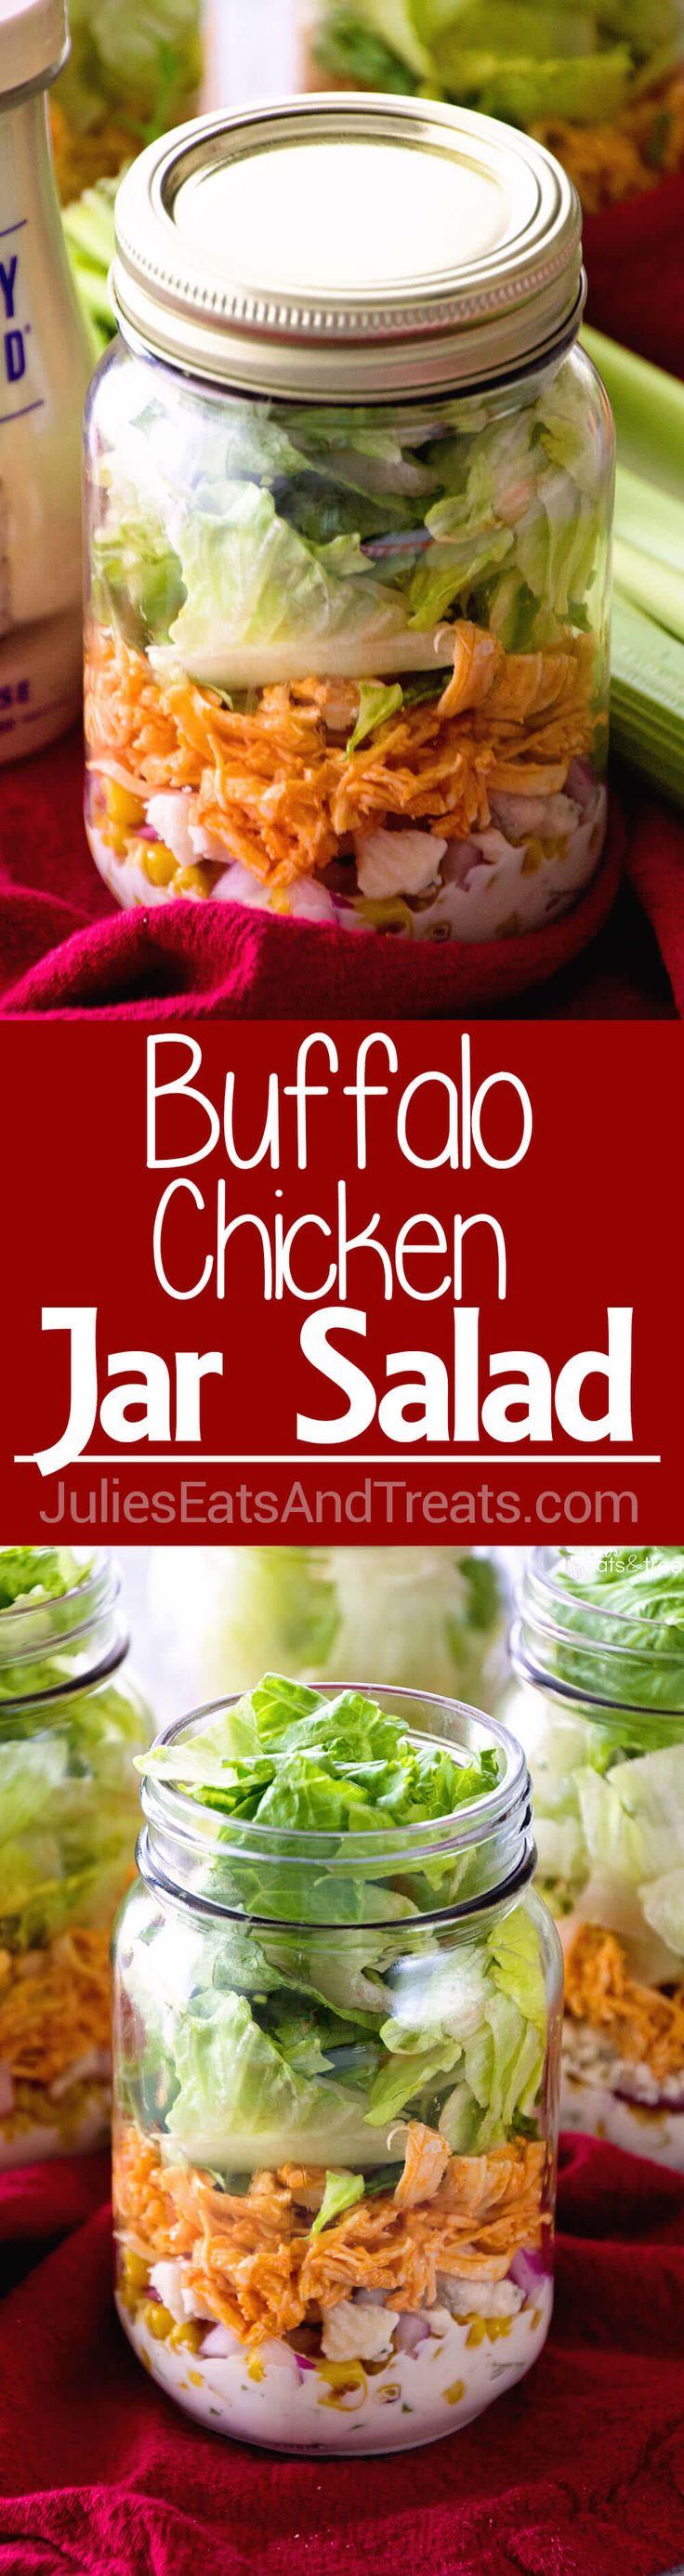 Buffalo Chicken Jar Salad ~ Easy, Light and Healthy Lunch Full of Flavor! Layers of Blue Cheese Dressing, Celery, Blue Cheese Crumbles, Corn, Onions, Buffalo Chicken and Lettuce! ~ http://www.julieseatsandtreats.com